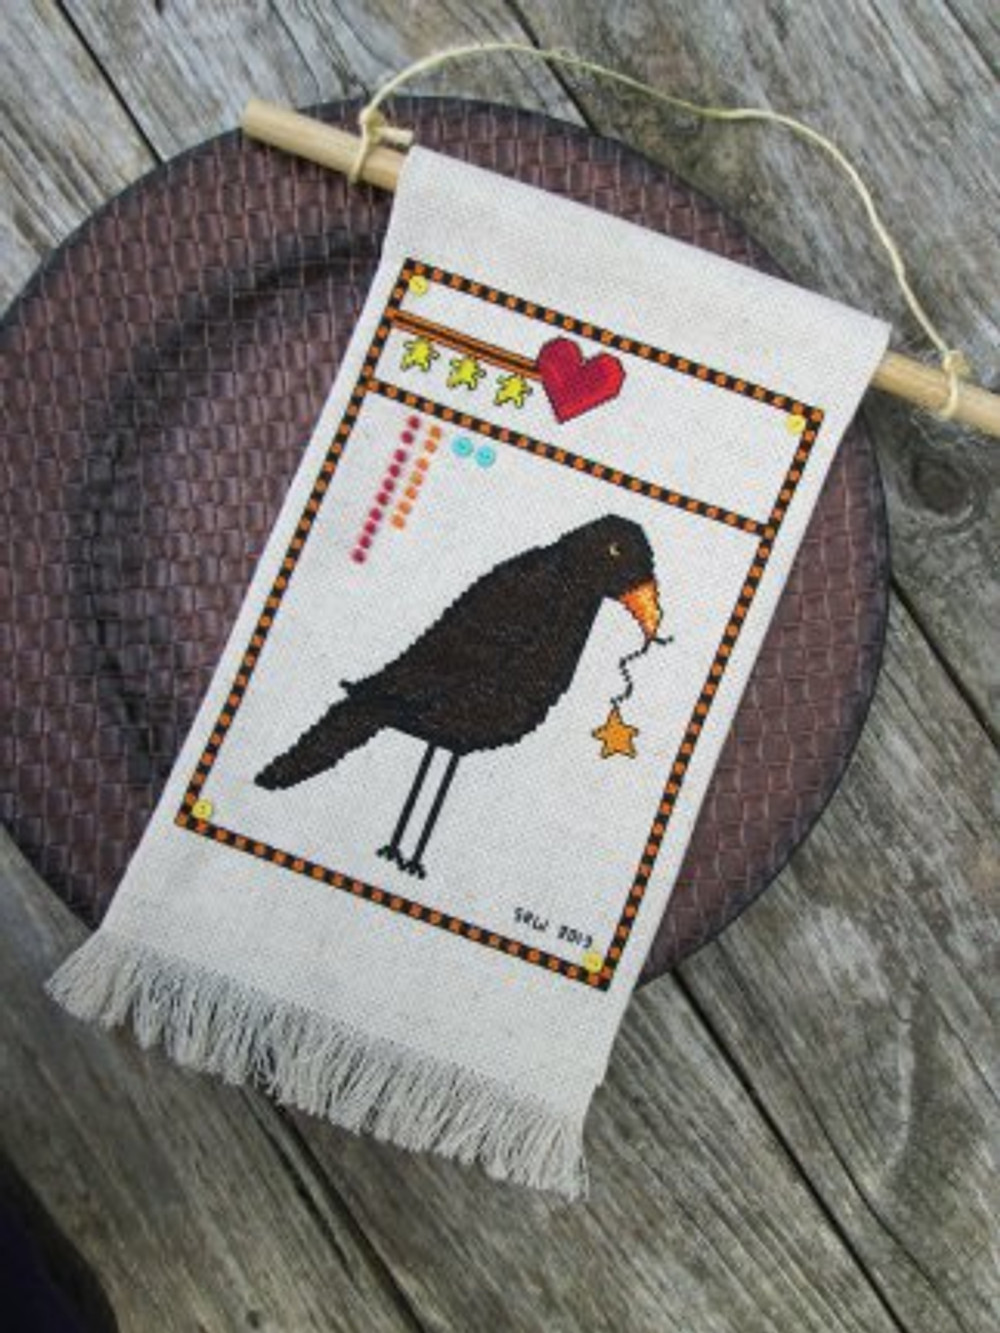 Protective Crow to watch over hearth and home.  Designed by SRW.